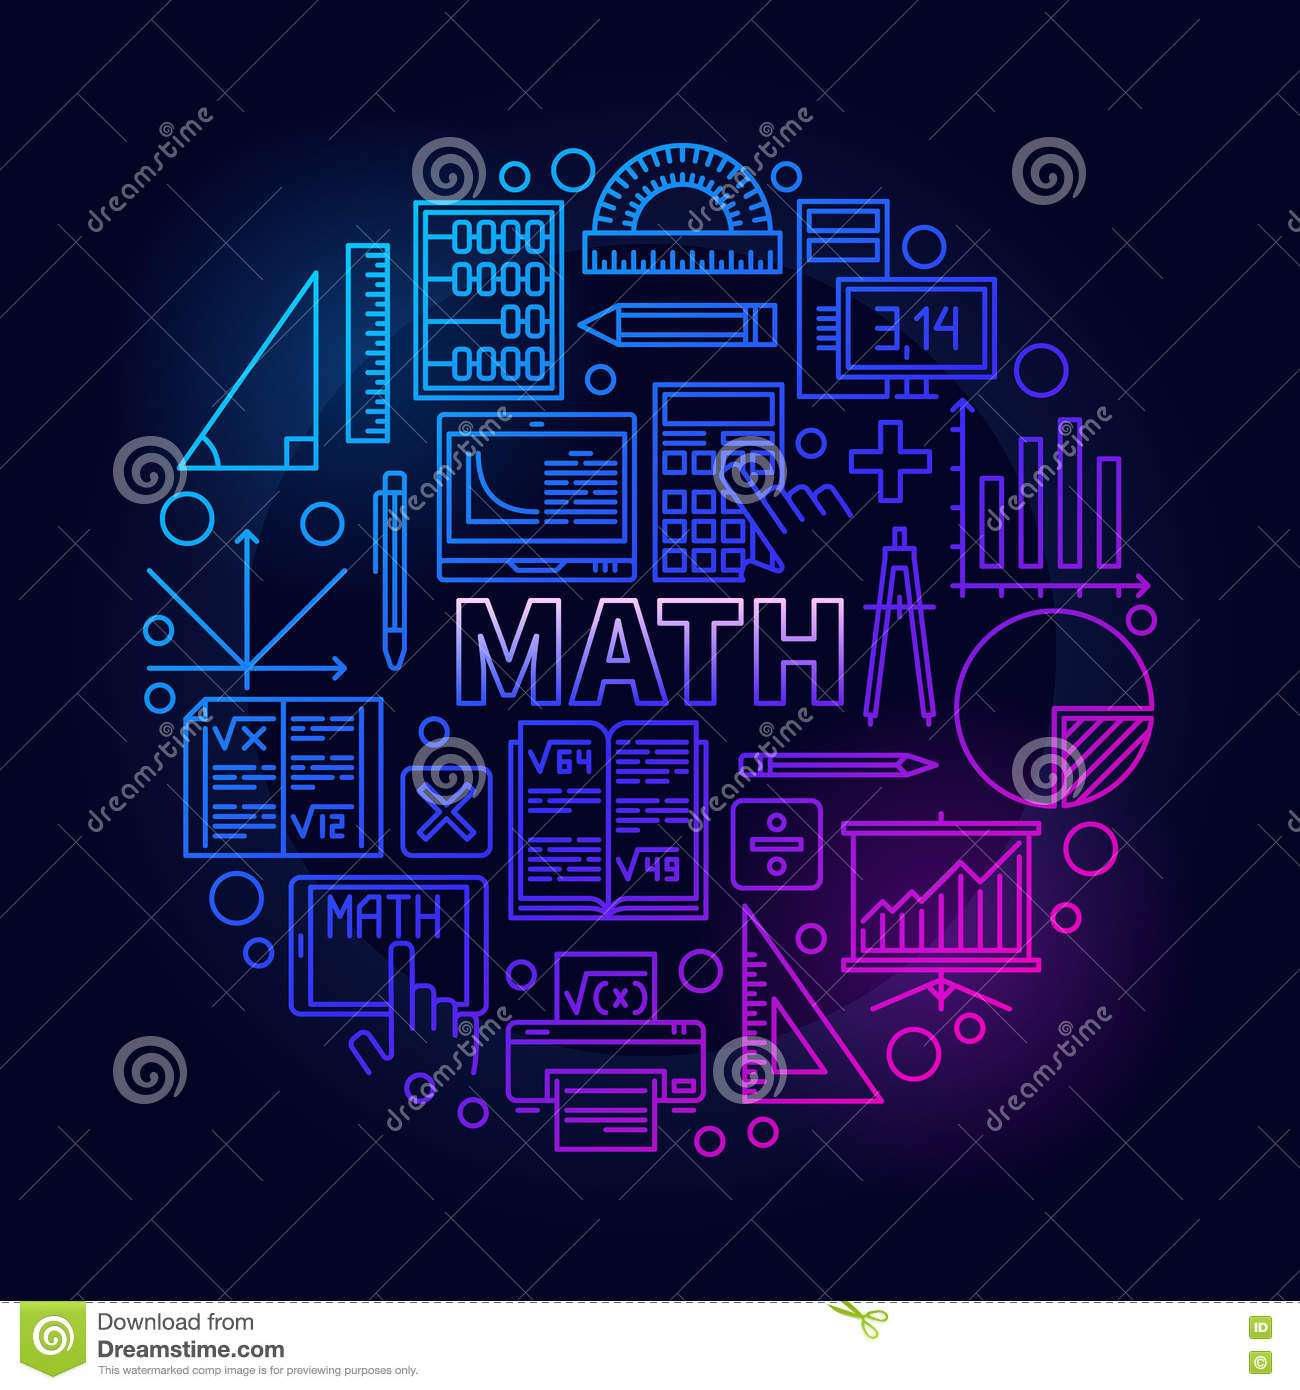 Prepare Your Child For Stem Subjects: Math Round Bright Symbol Stock Vector. Illustration Of